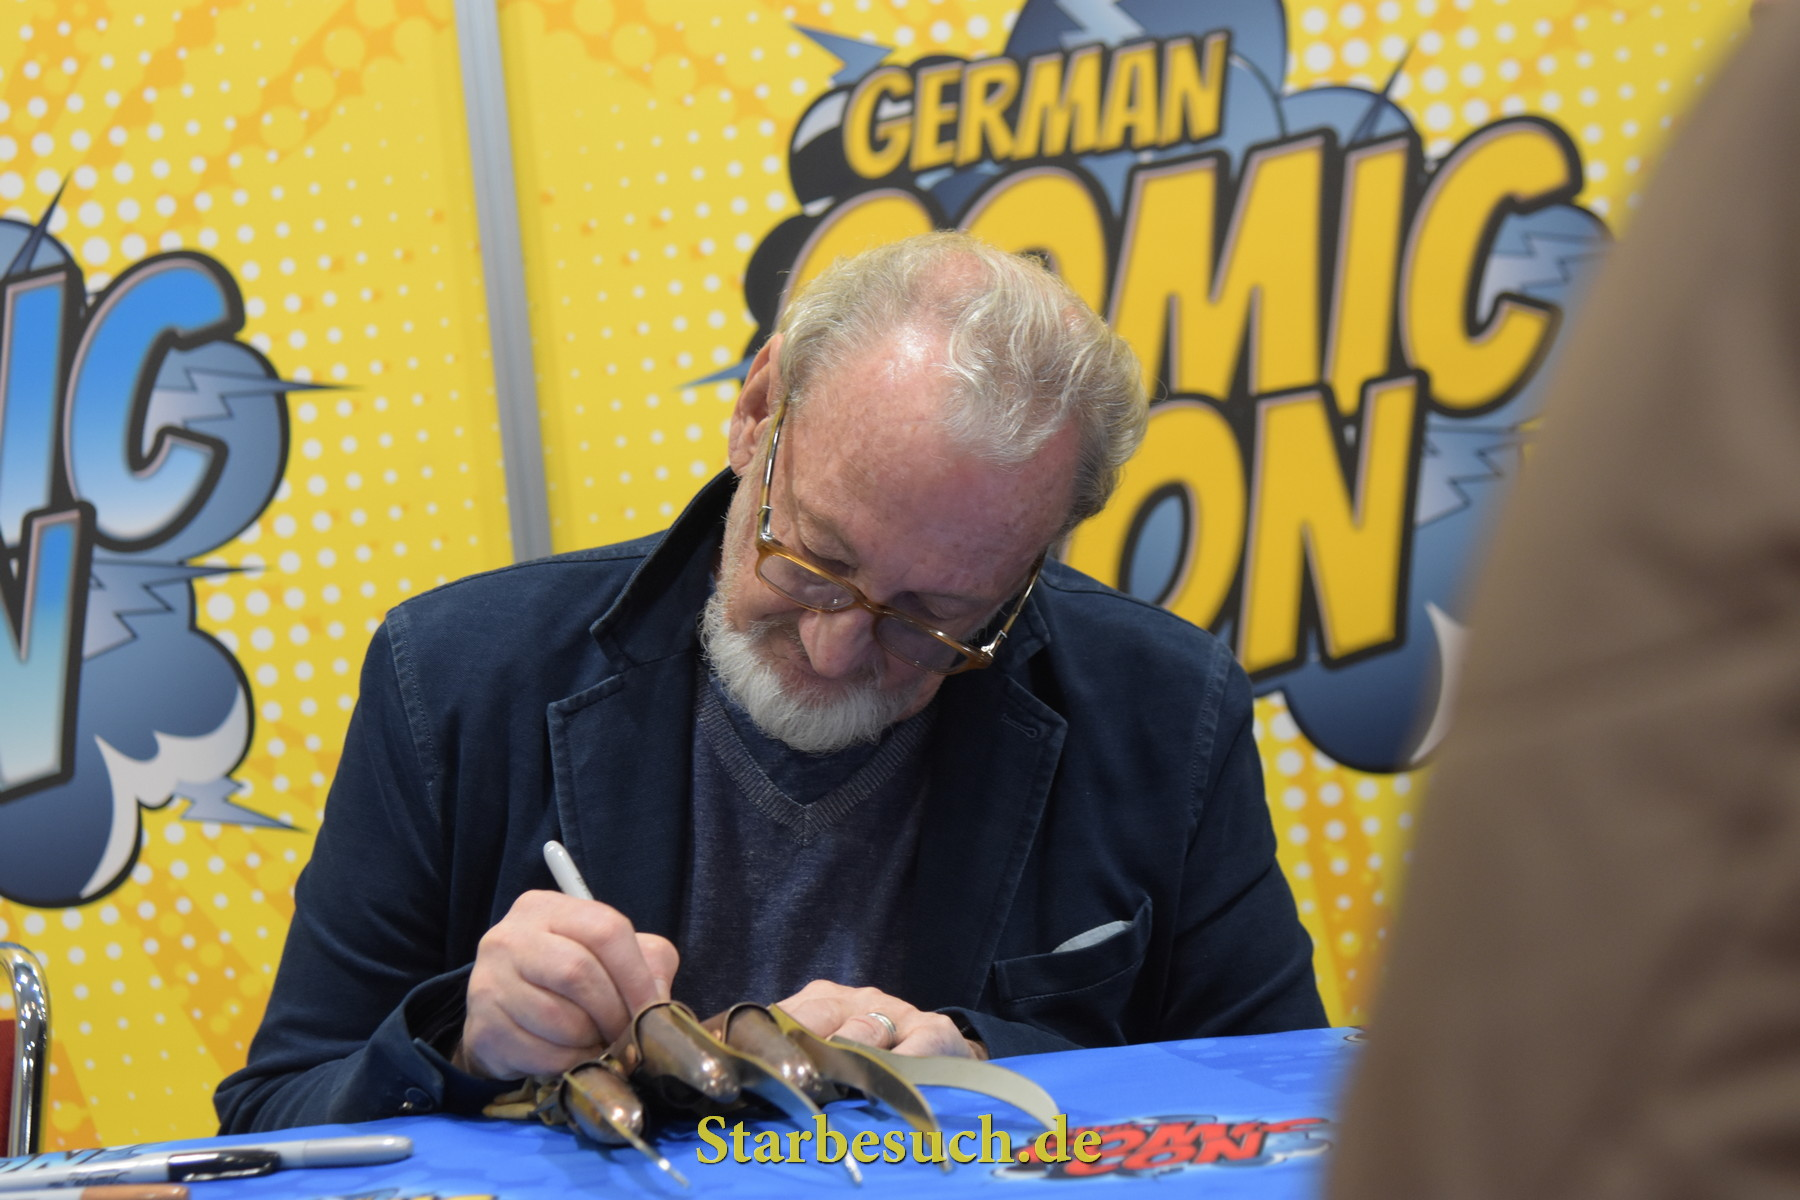 Dortmund, Germany - December 9th 2017: US Actor Robert Englund (* 1947, Freddy Krueger in the Nightmare on Elm Street film series, Freddy vs. Jason) at German Comic Con Dortmund.